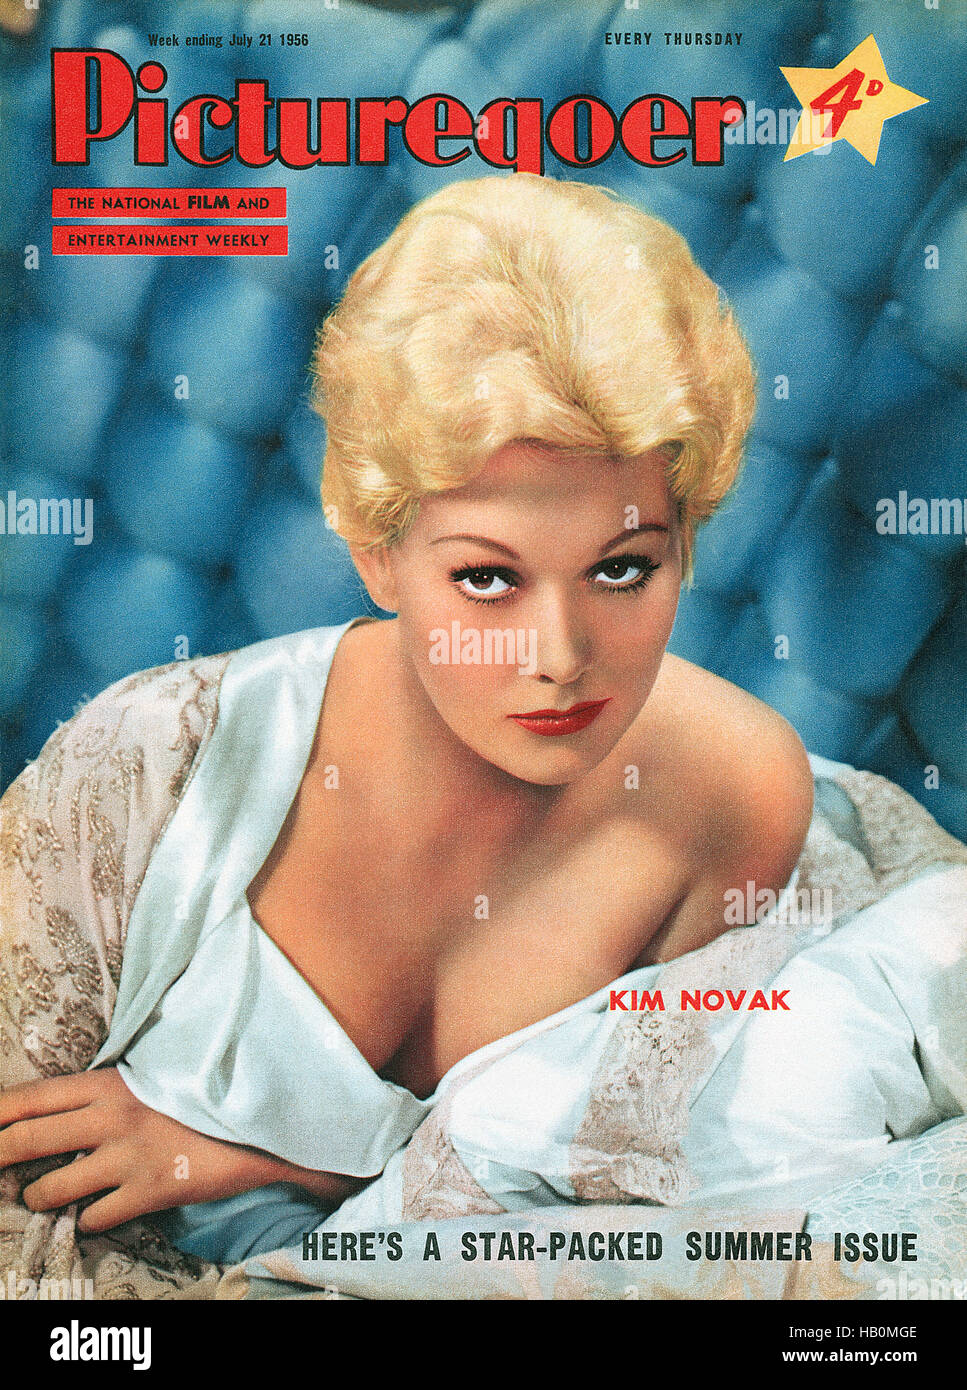 Front cover of Picturegoer magazine for 21st July 1956 featuring actress Kim Novak - Stock Image